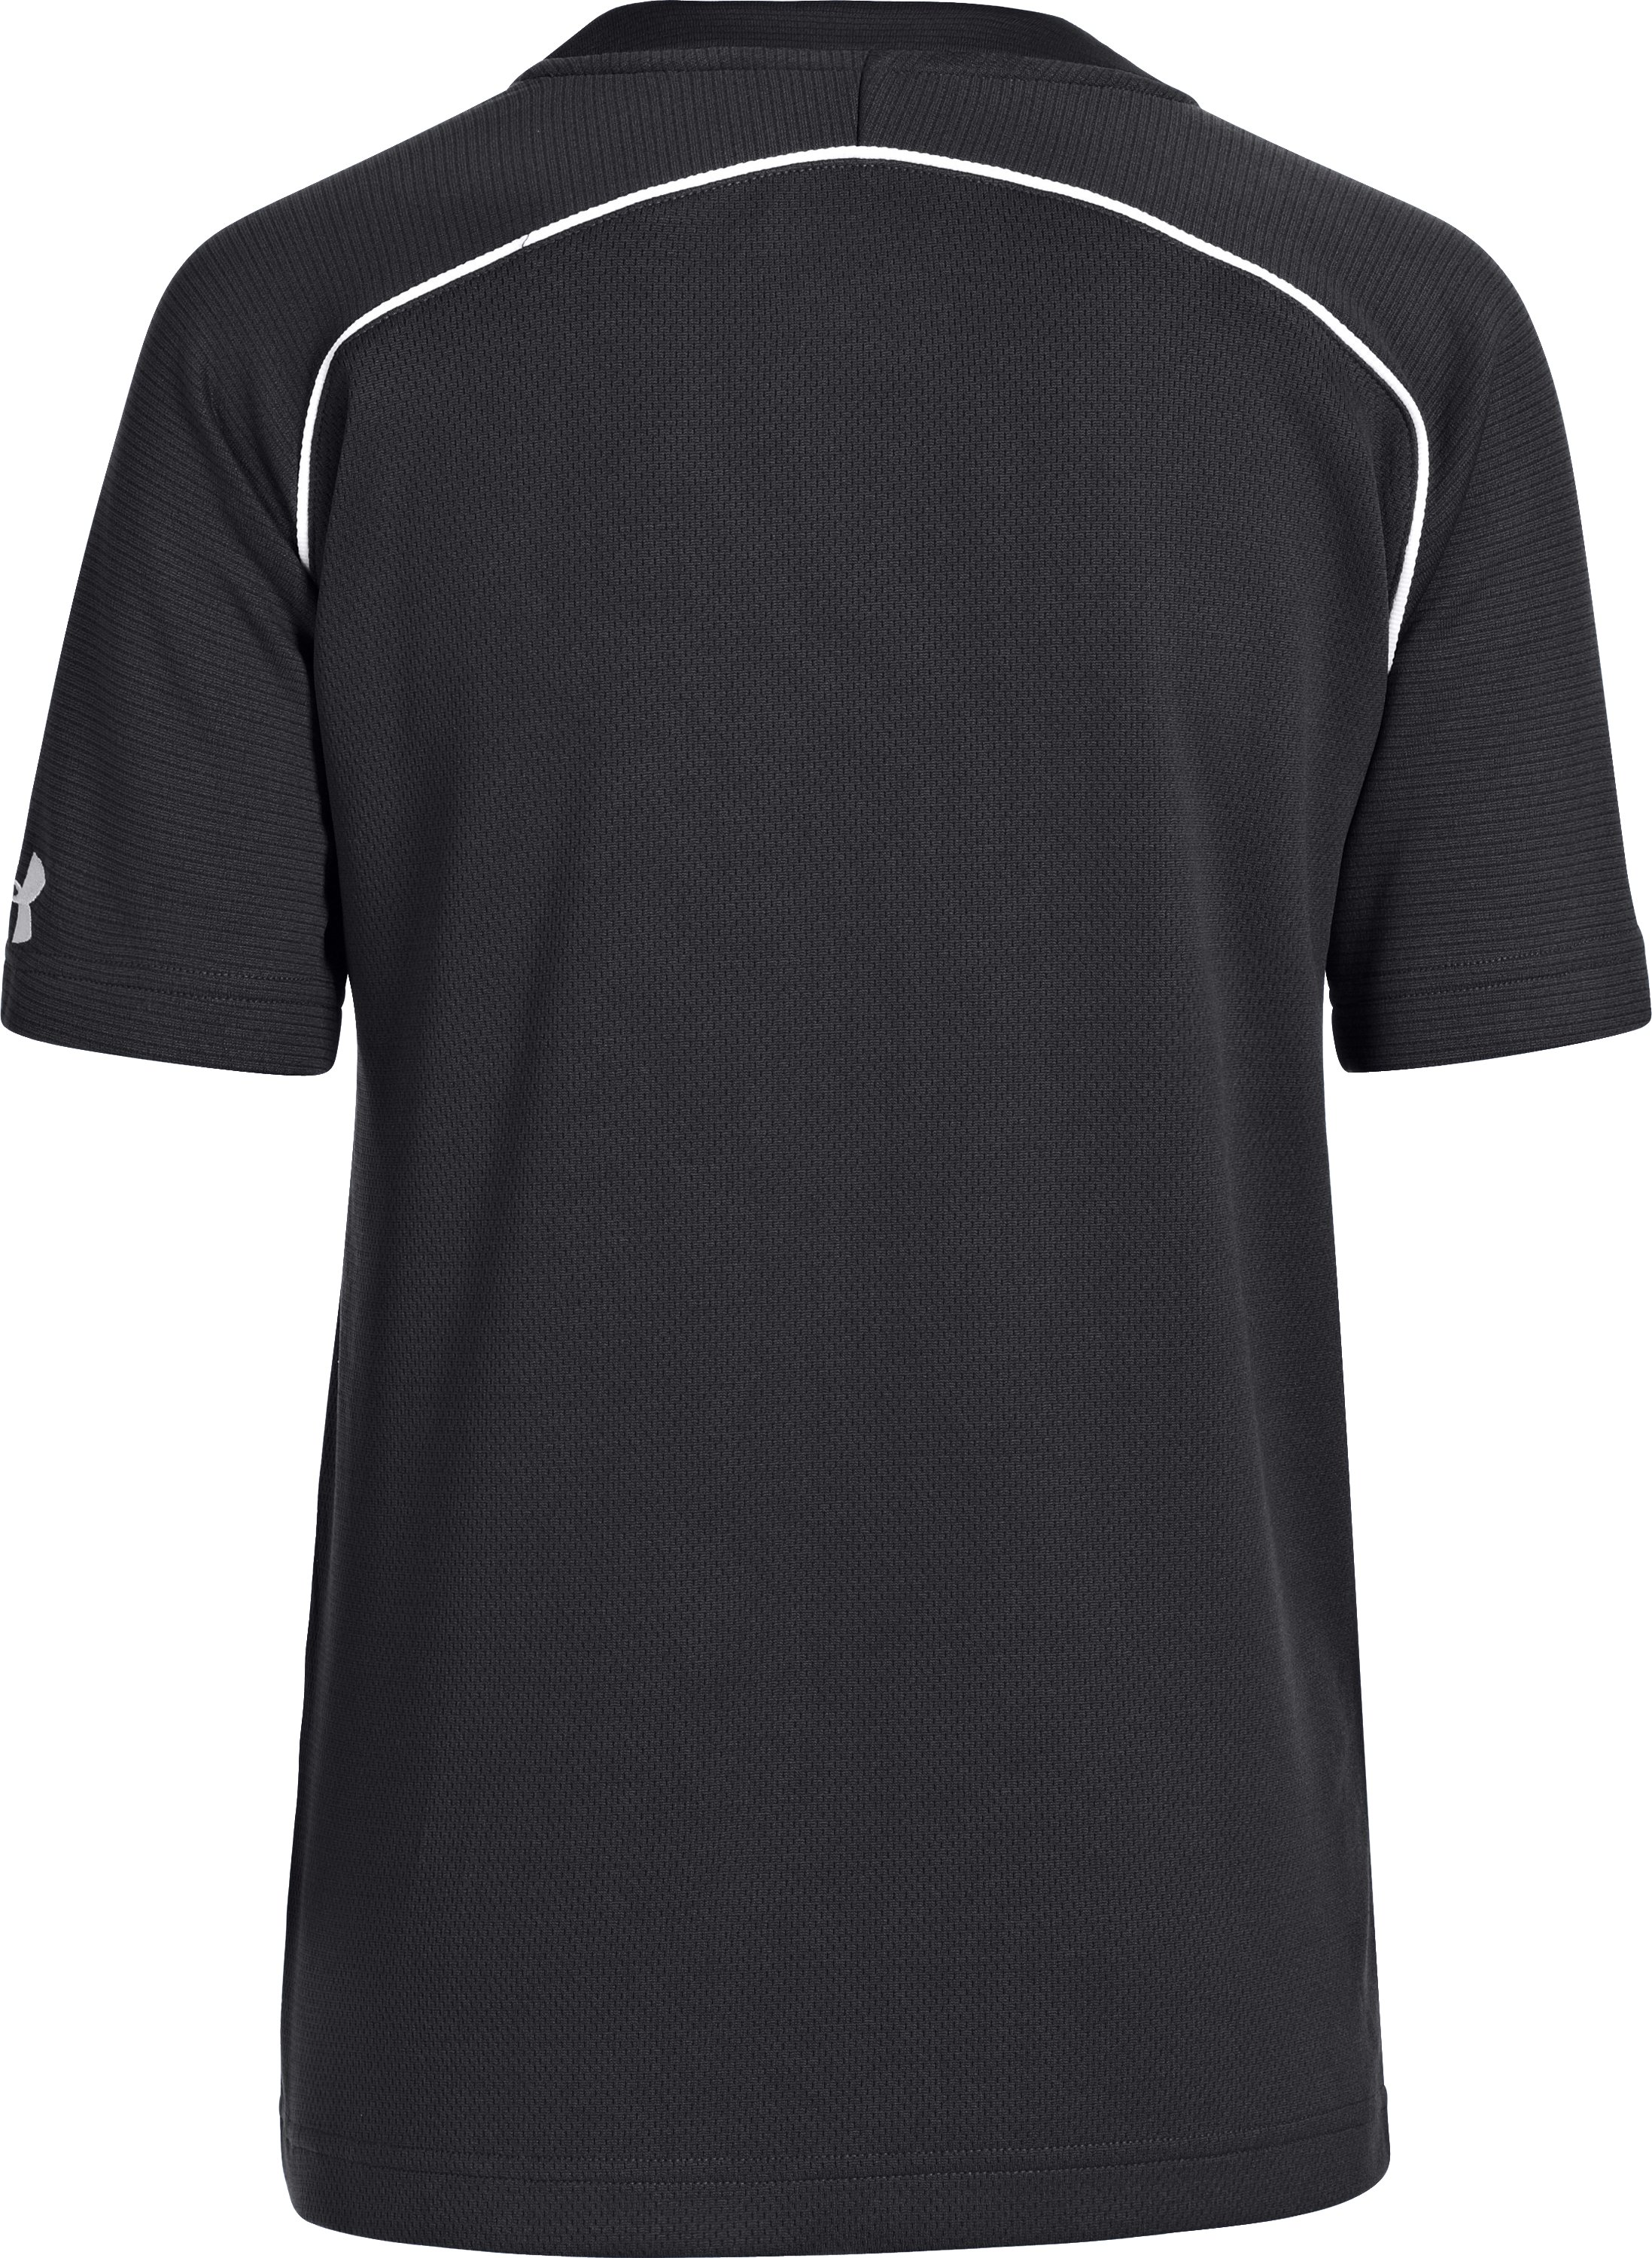 Boys' UA Landsdown II Baseball Jersey, Black ,